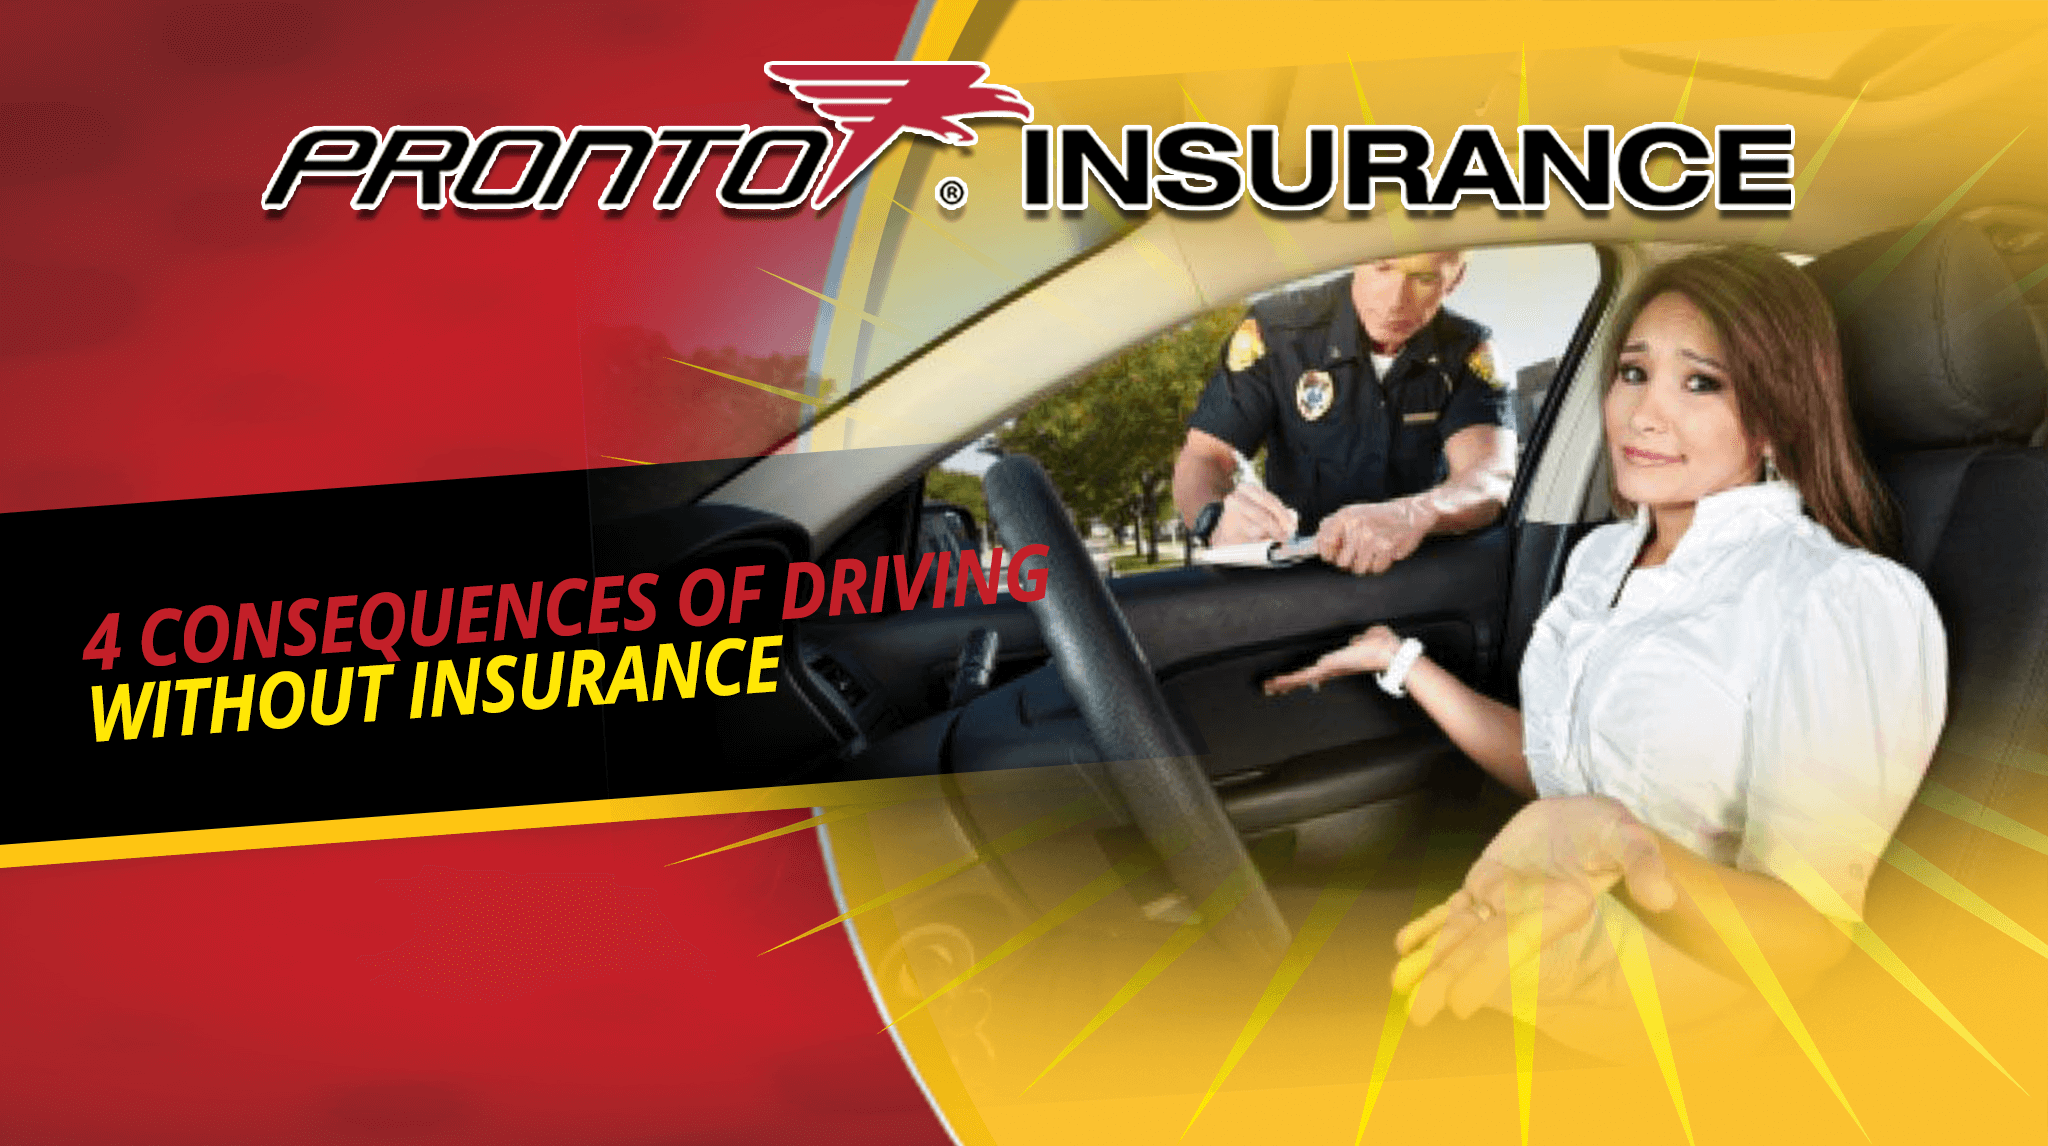 4 Consequences of Driving Without Insurance